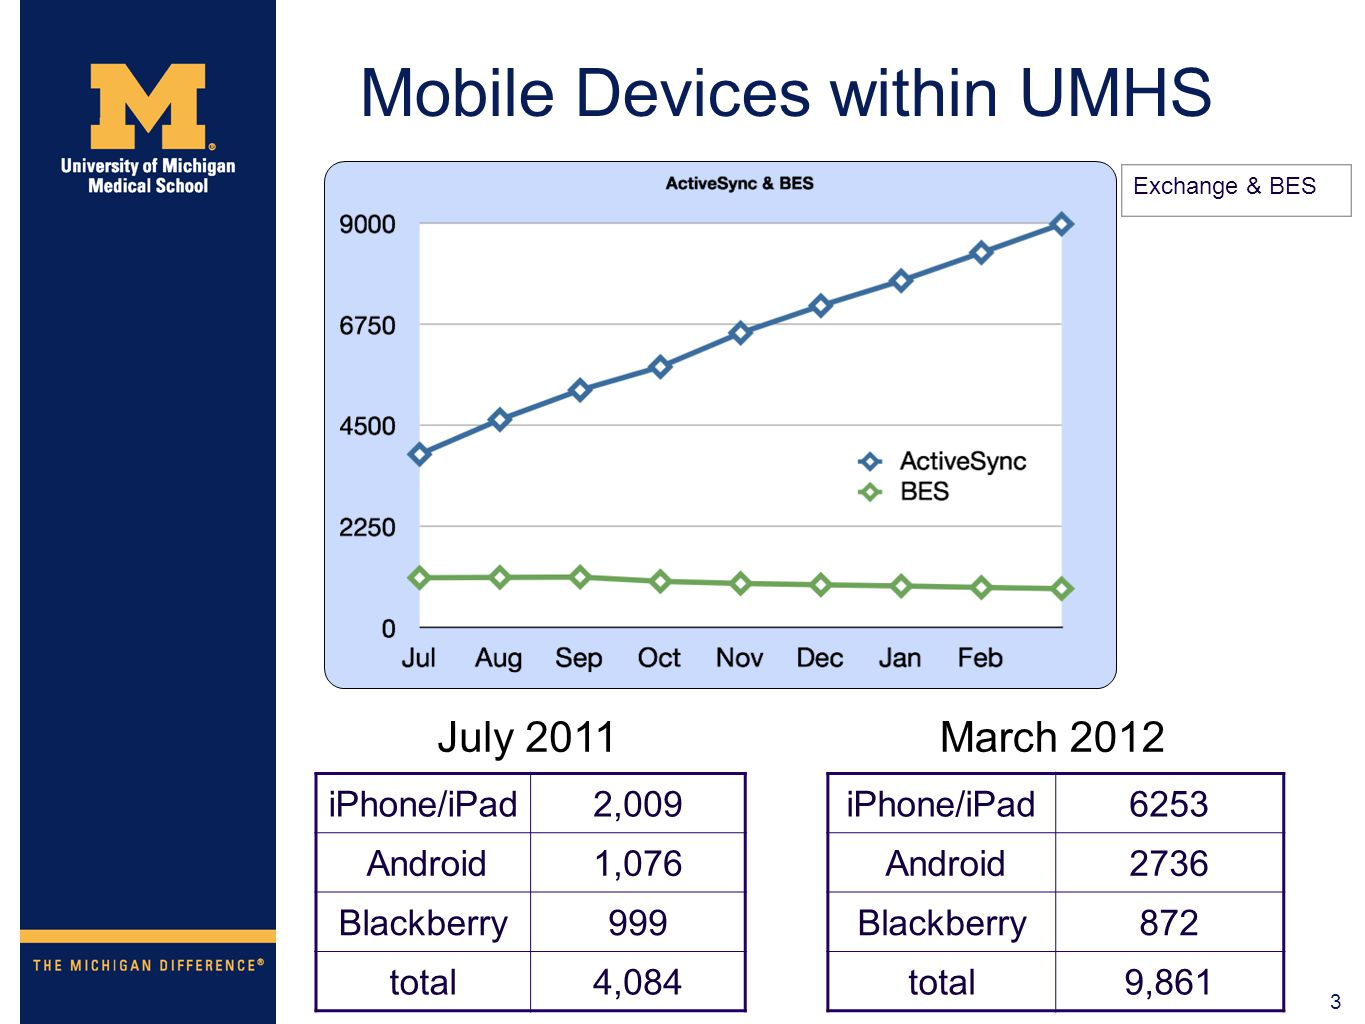 3 Mobile Devices within UMHS iPhone/iPad2,009 Android1,076 Blackberry999 total4,084 Exchange & BES iPhone/iPad6253 Android2736 Blackberry872 total9,86